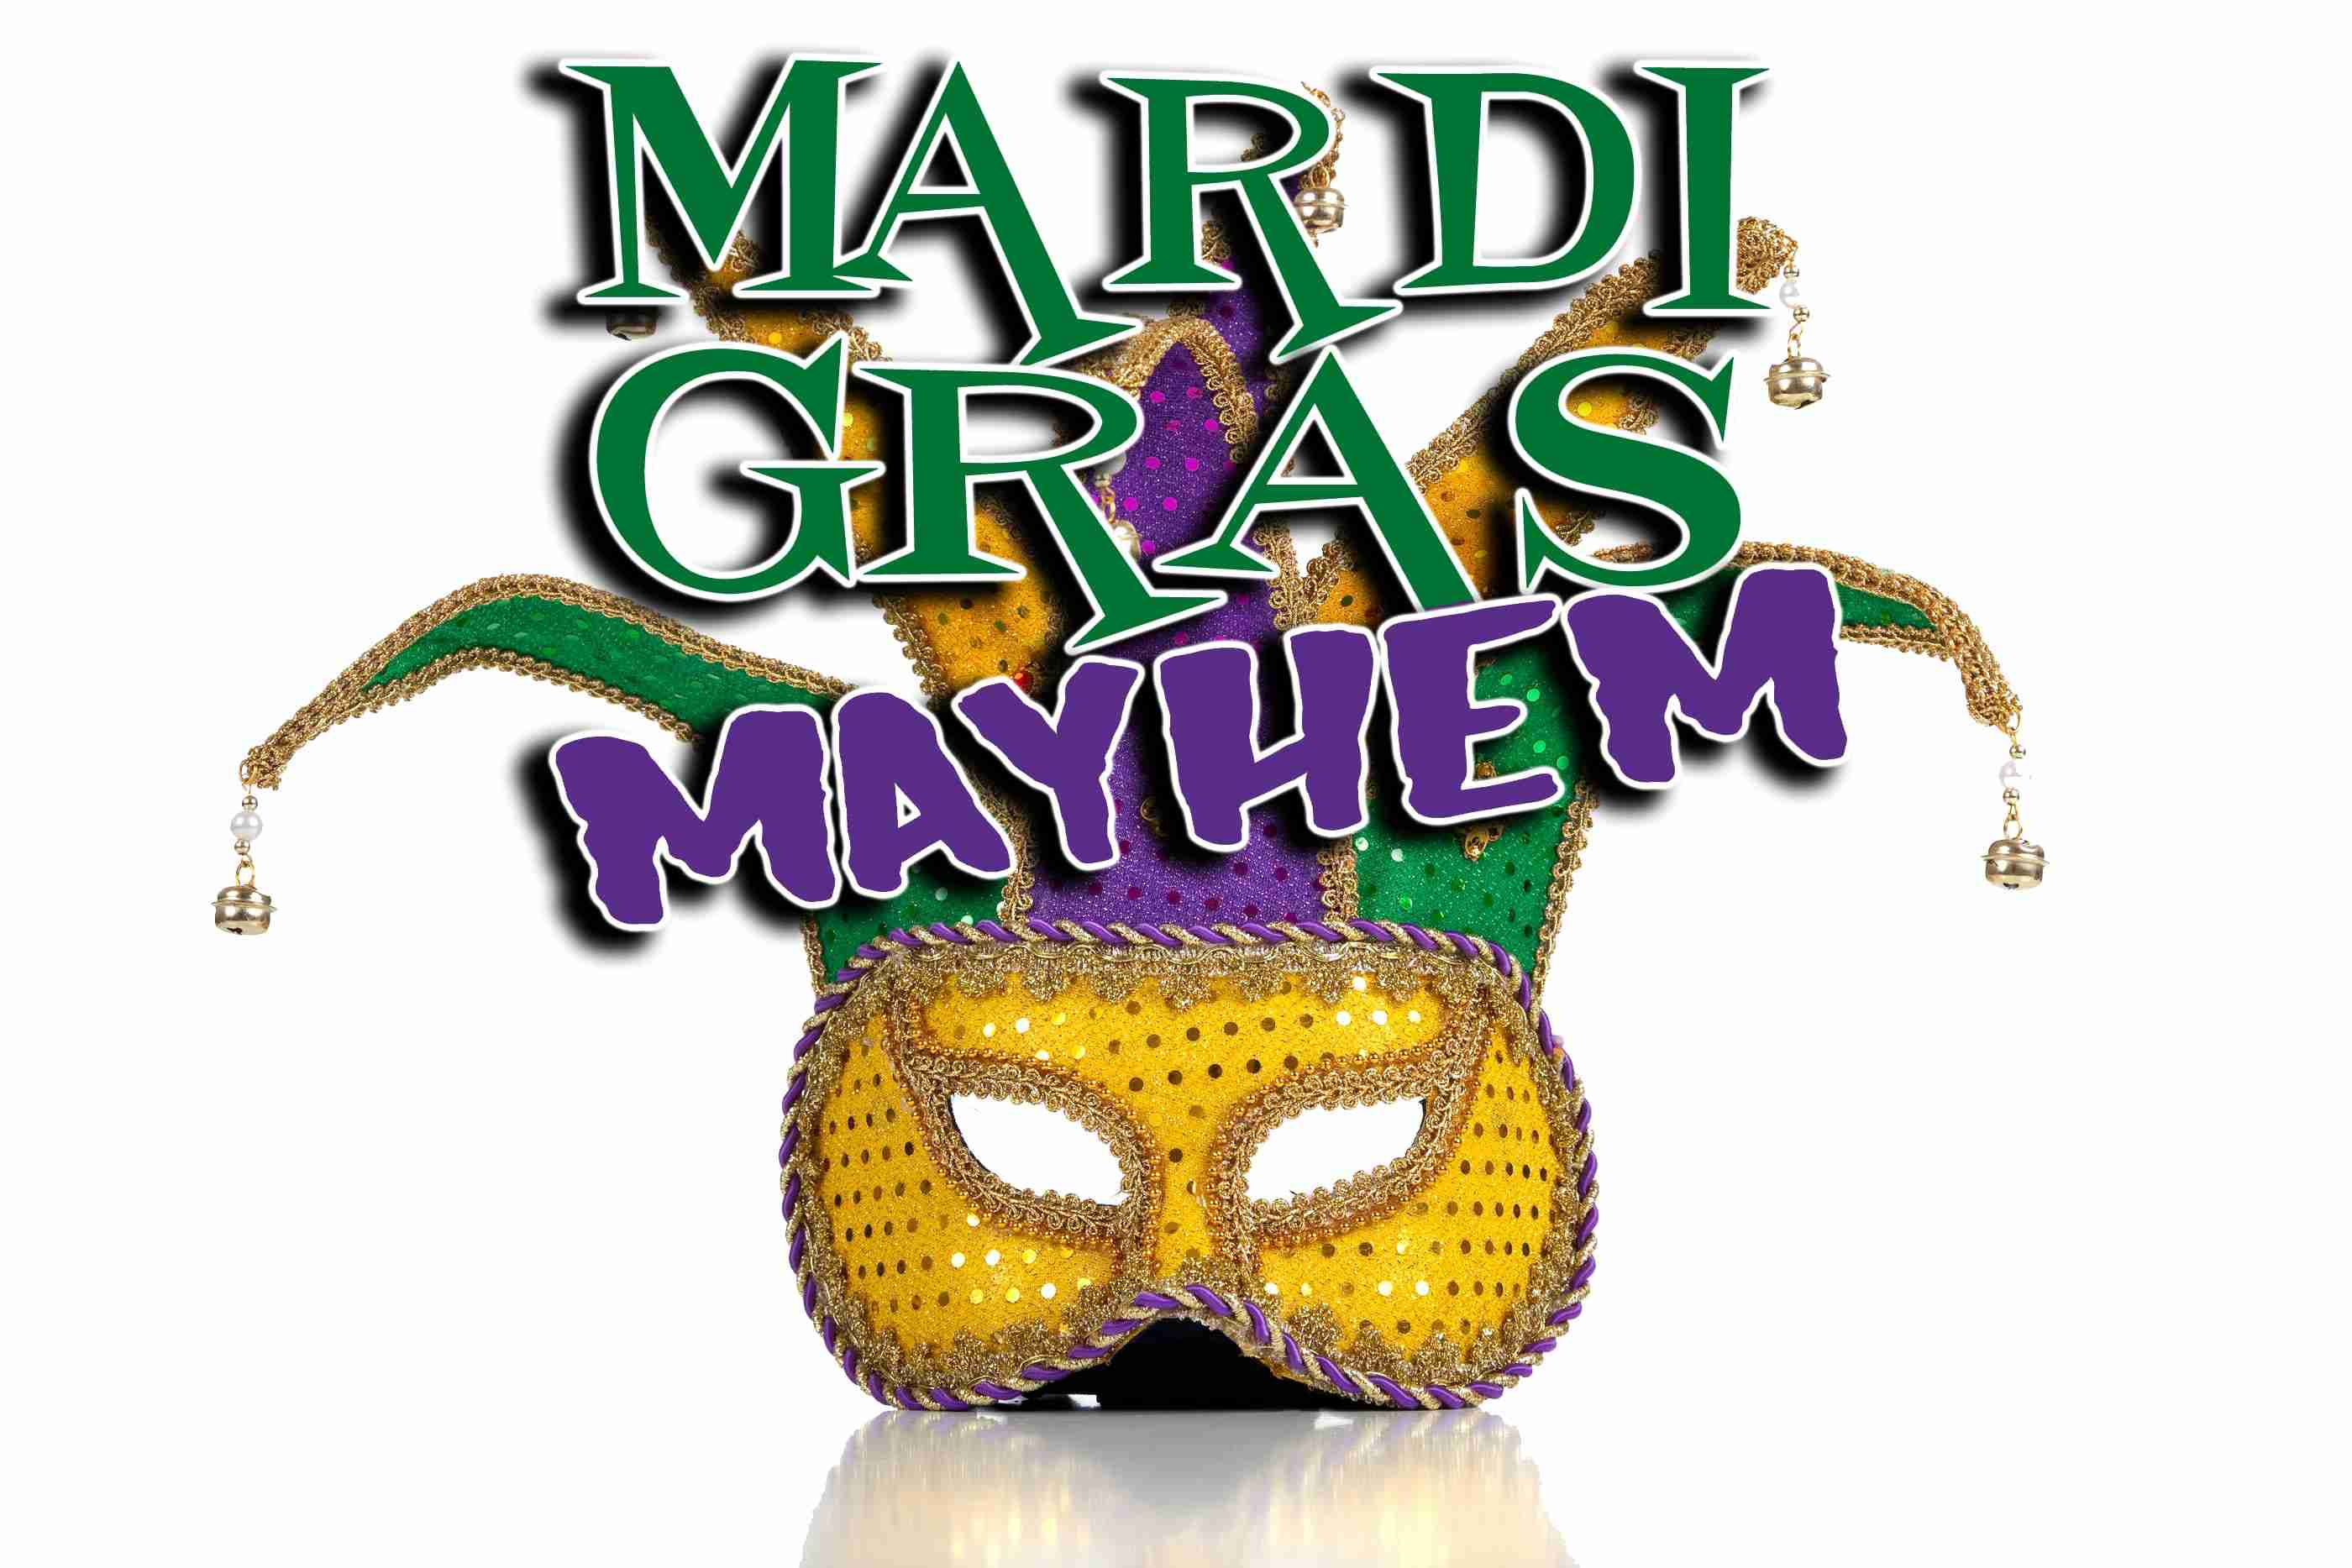 Gold purple and green glittery mardi gras mask on a white background